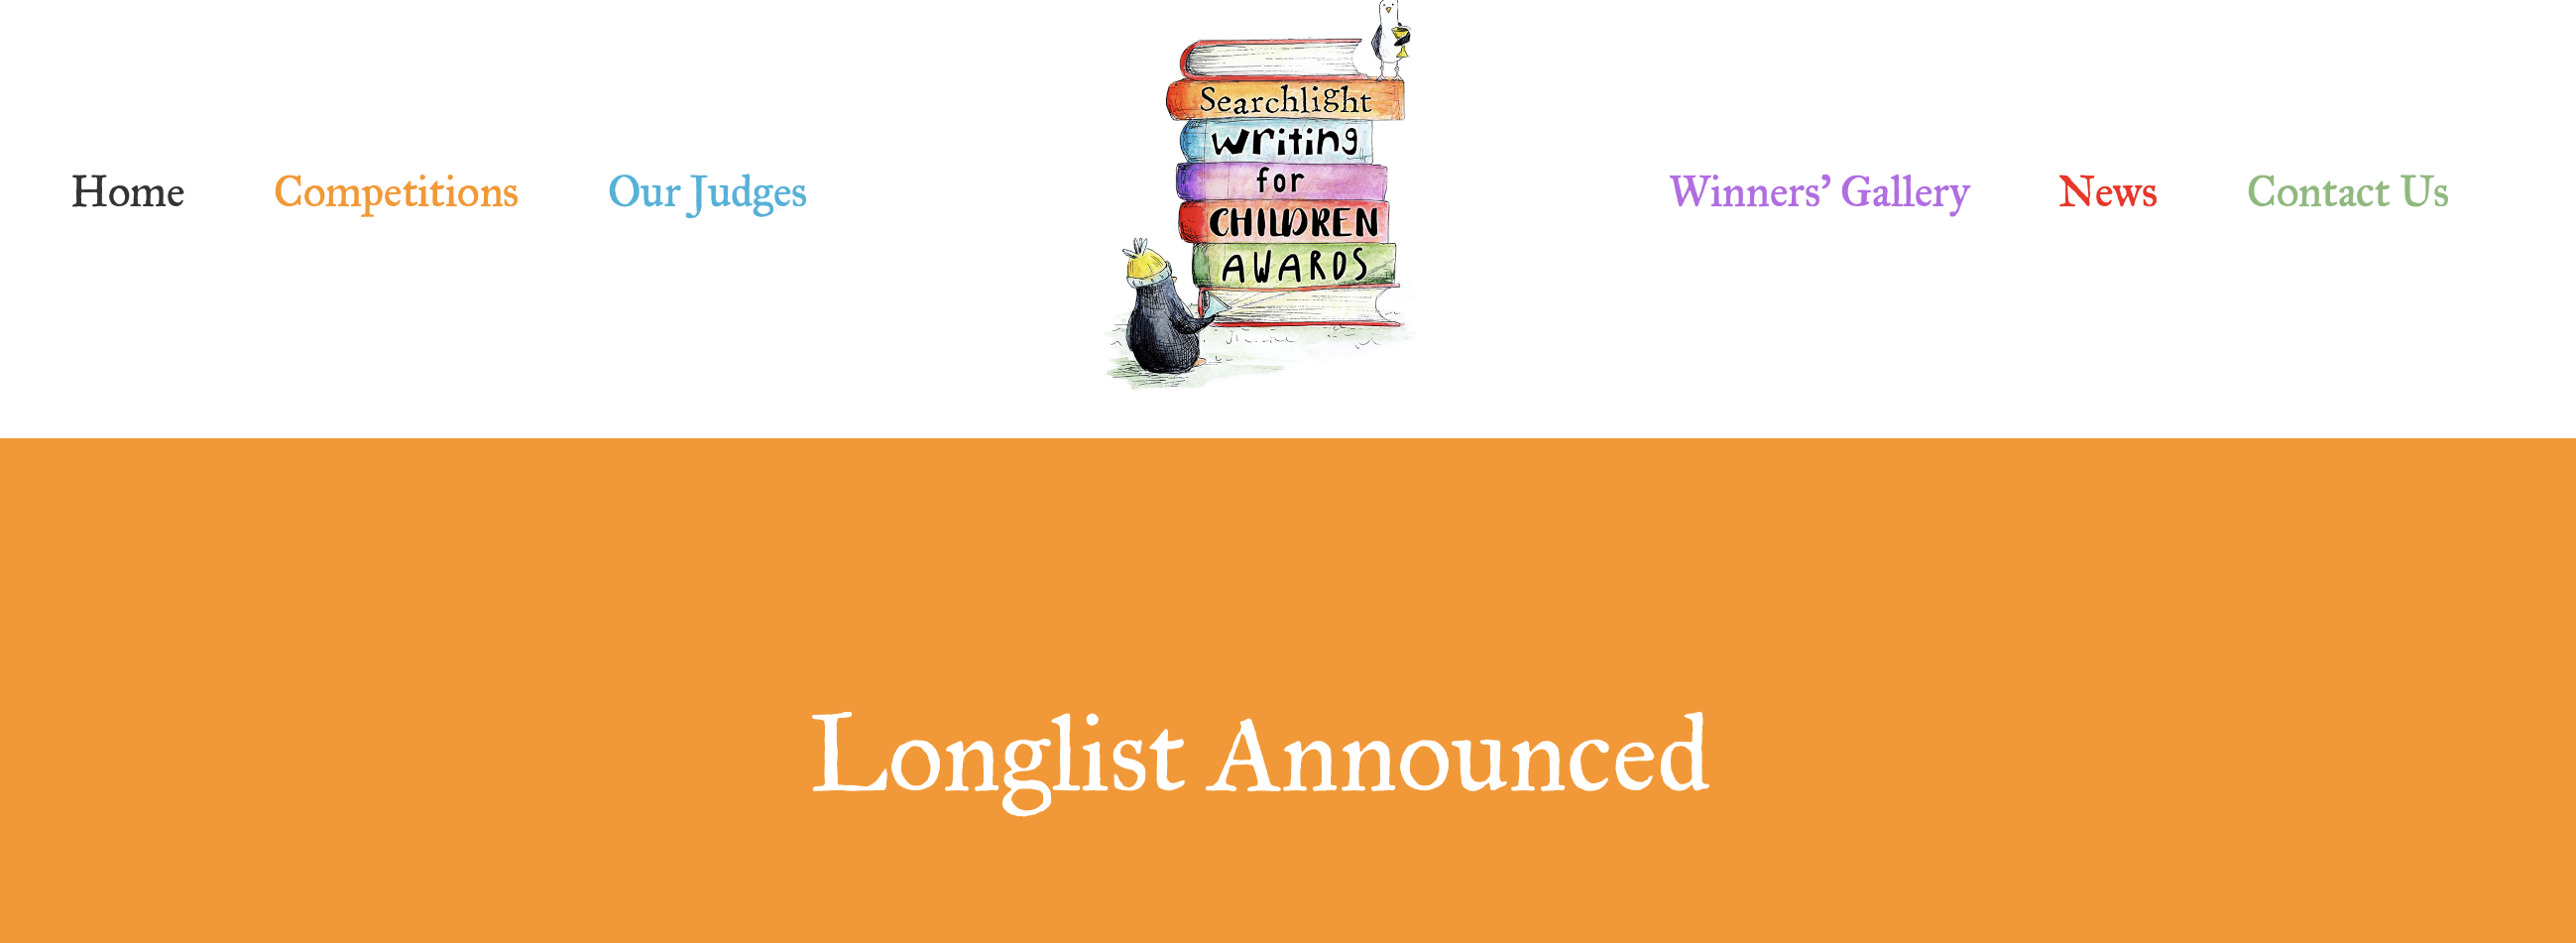 I made it on to the Searchlight Awards Longlist